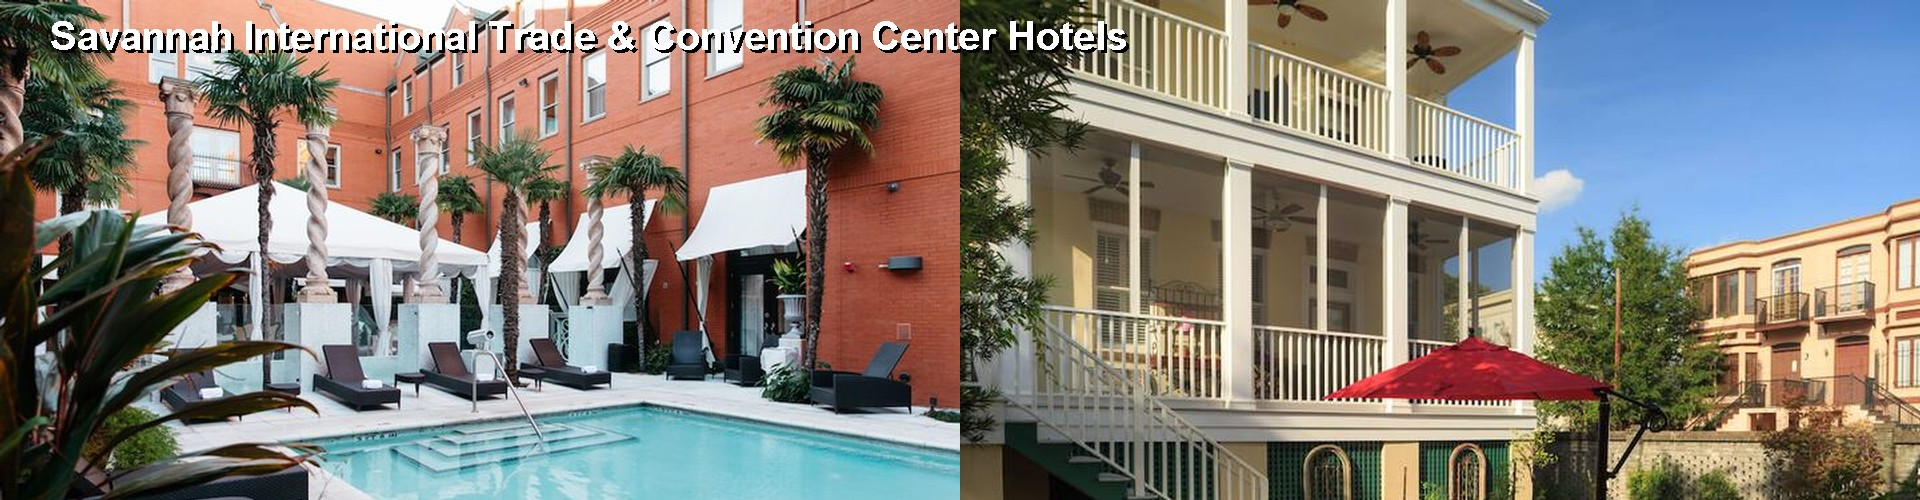 5 Best Hotels near Savannah International Trade & Convention Center